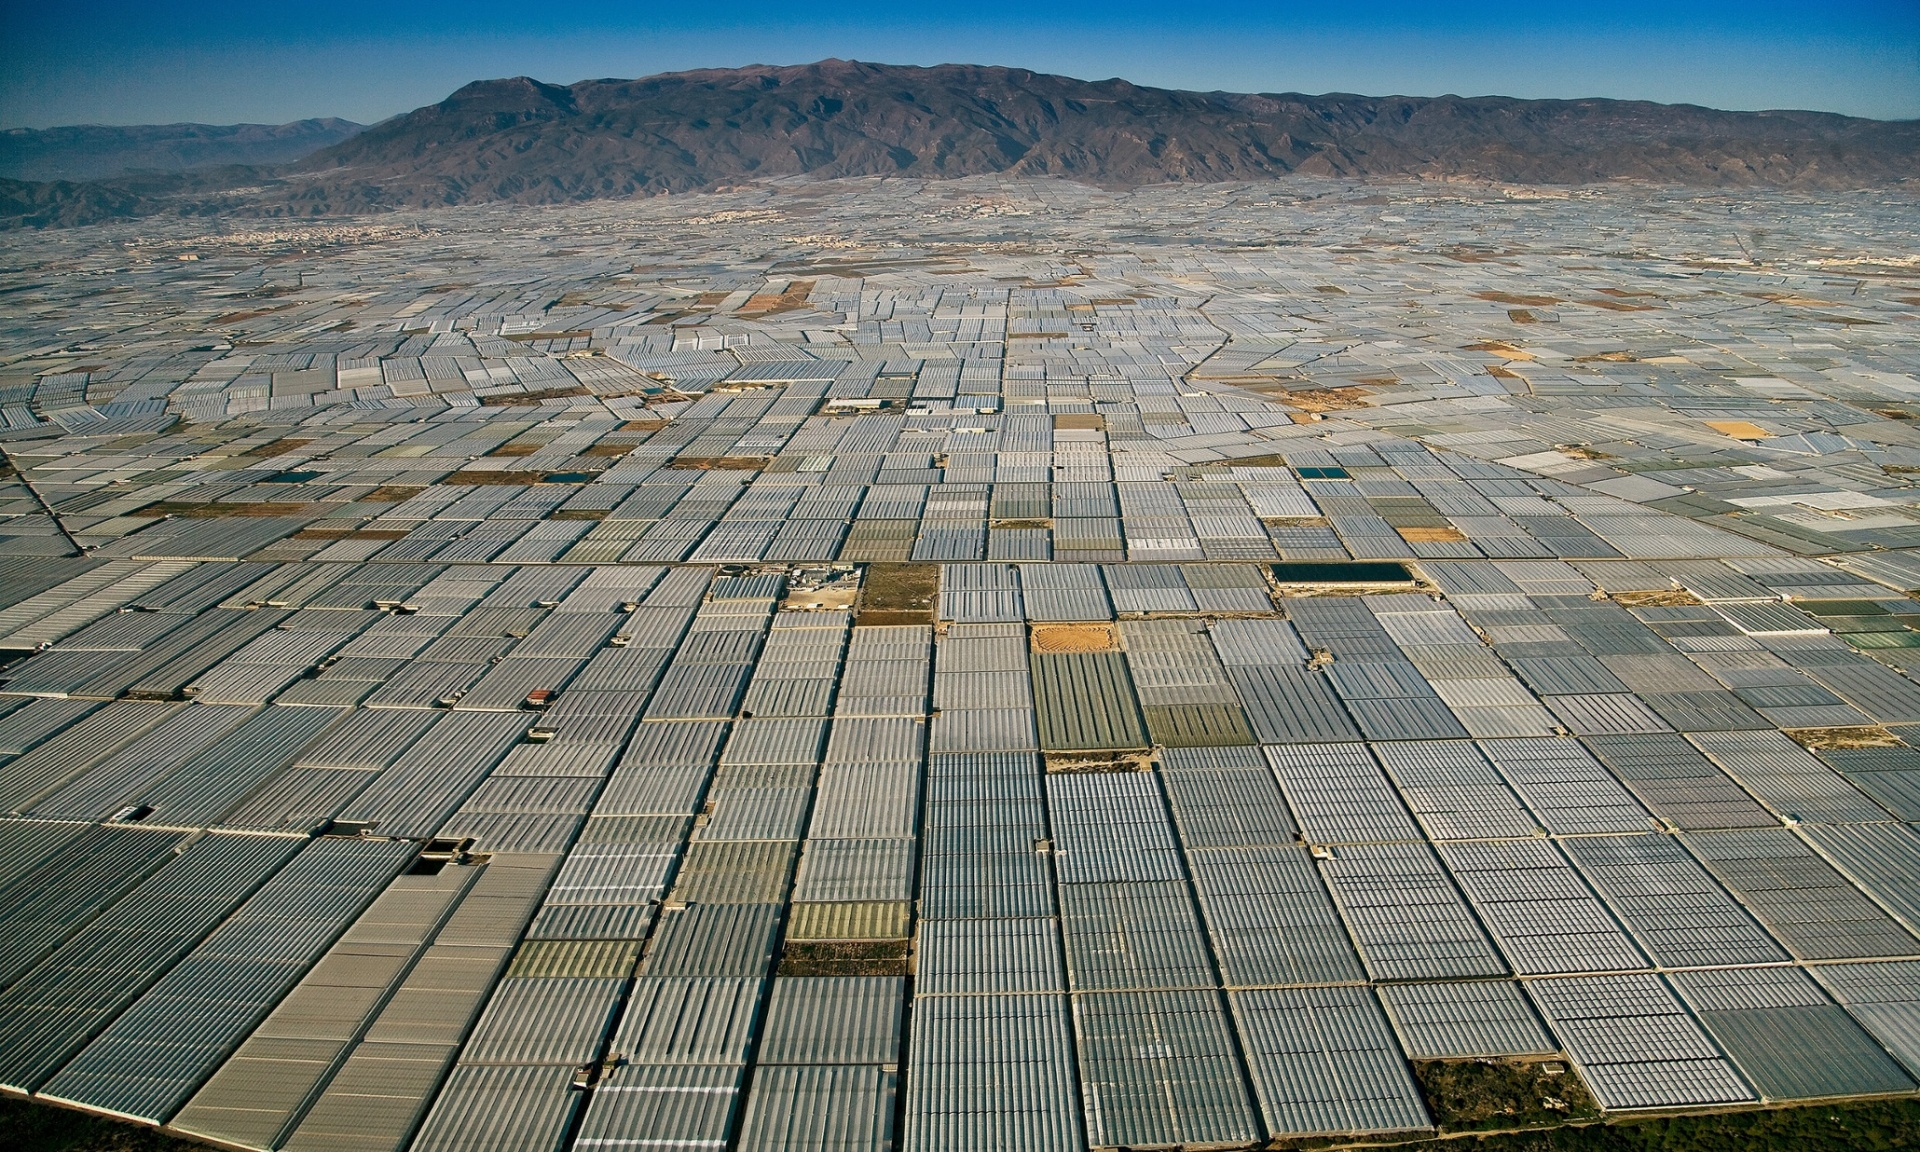 Greenhouses in Almeria, Spain